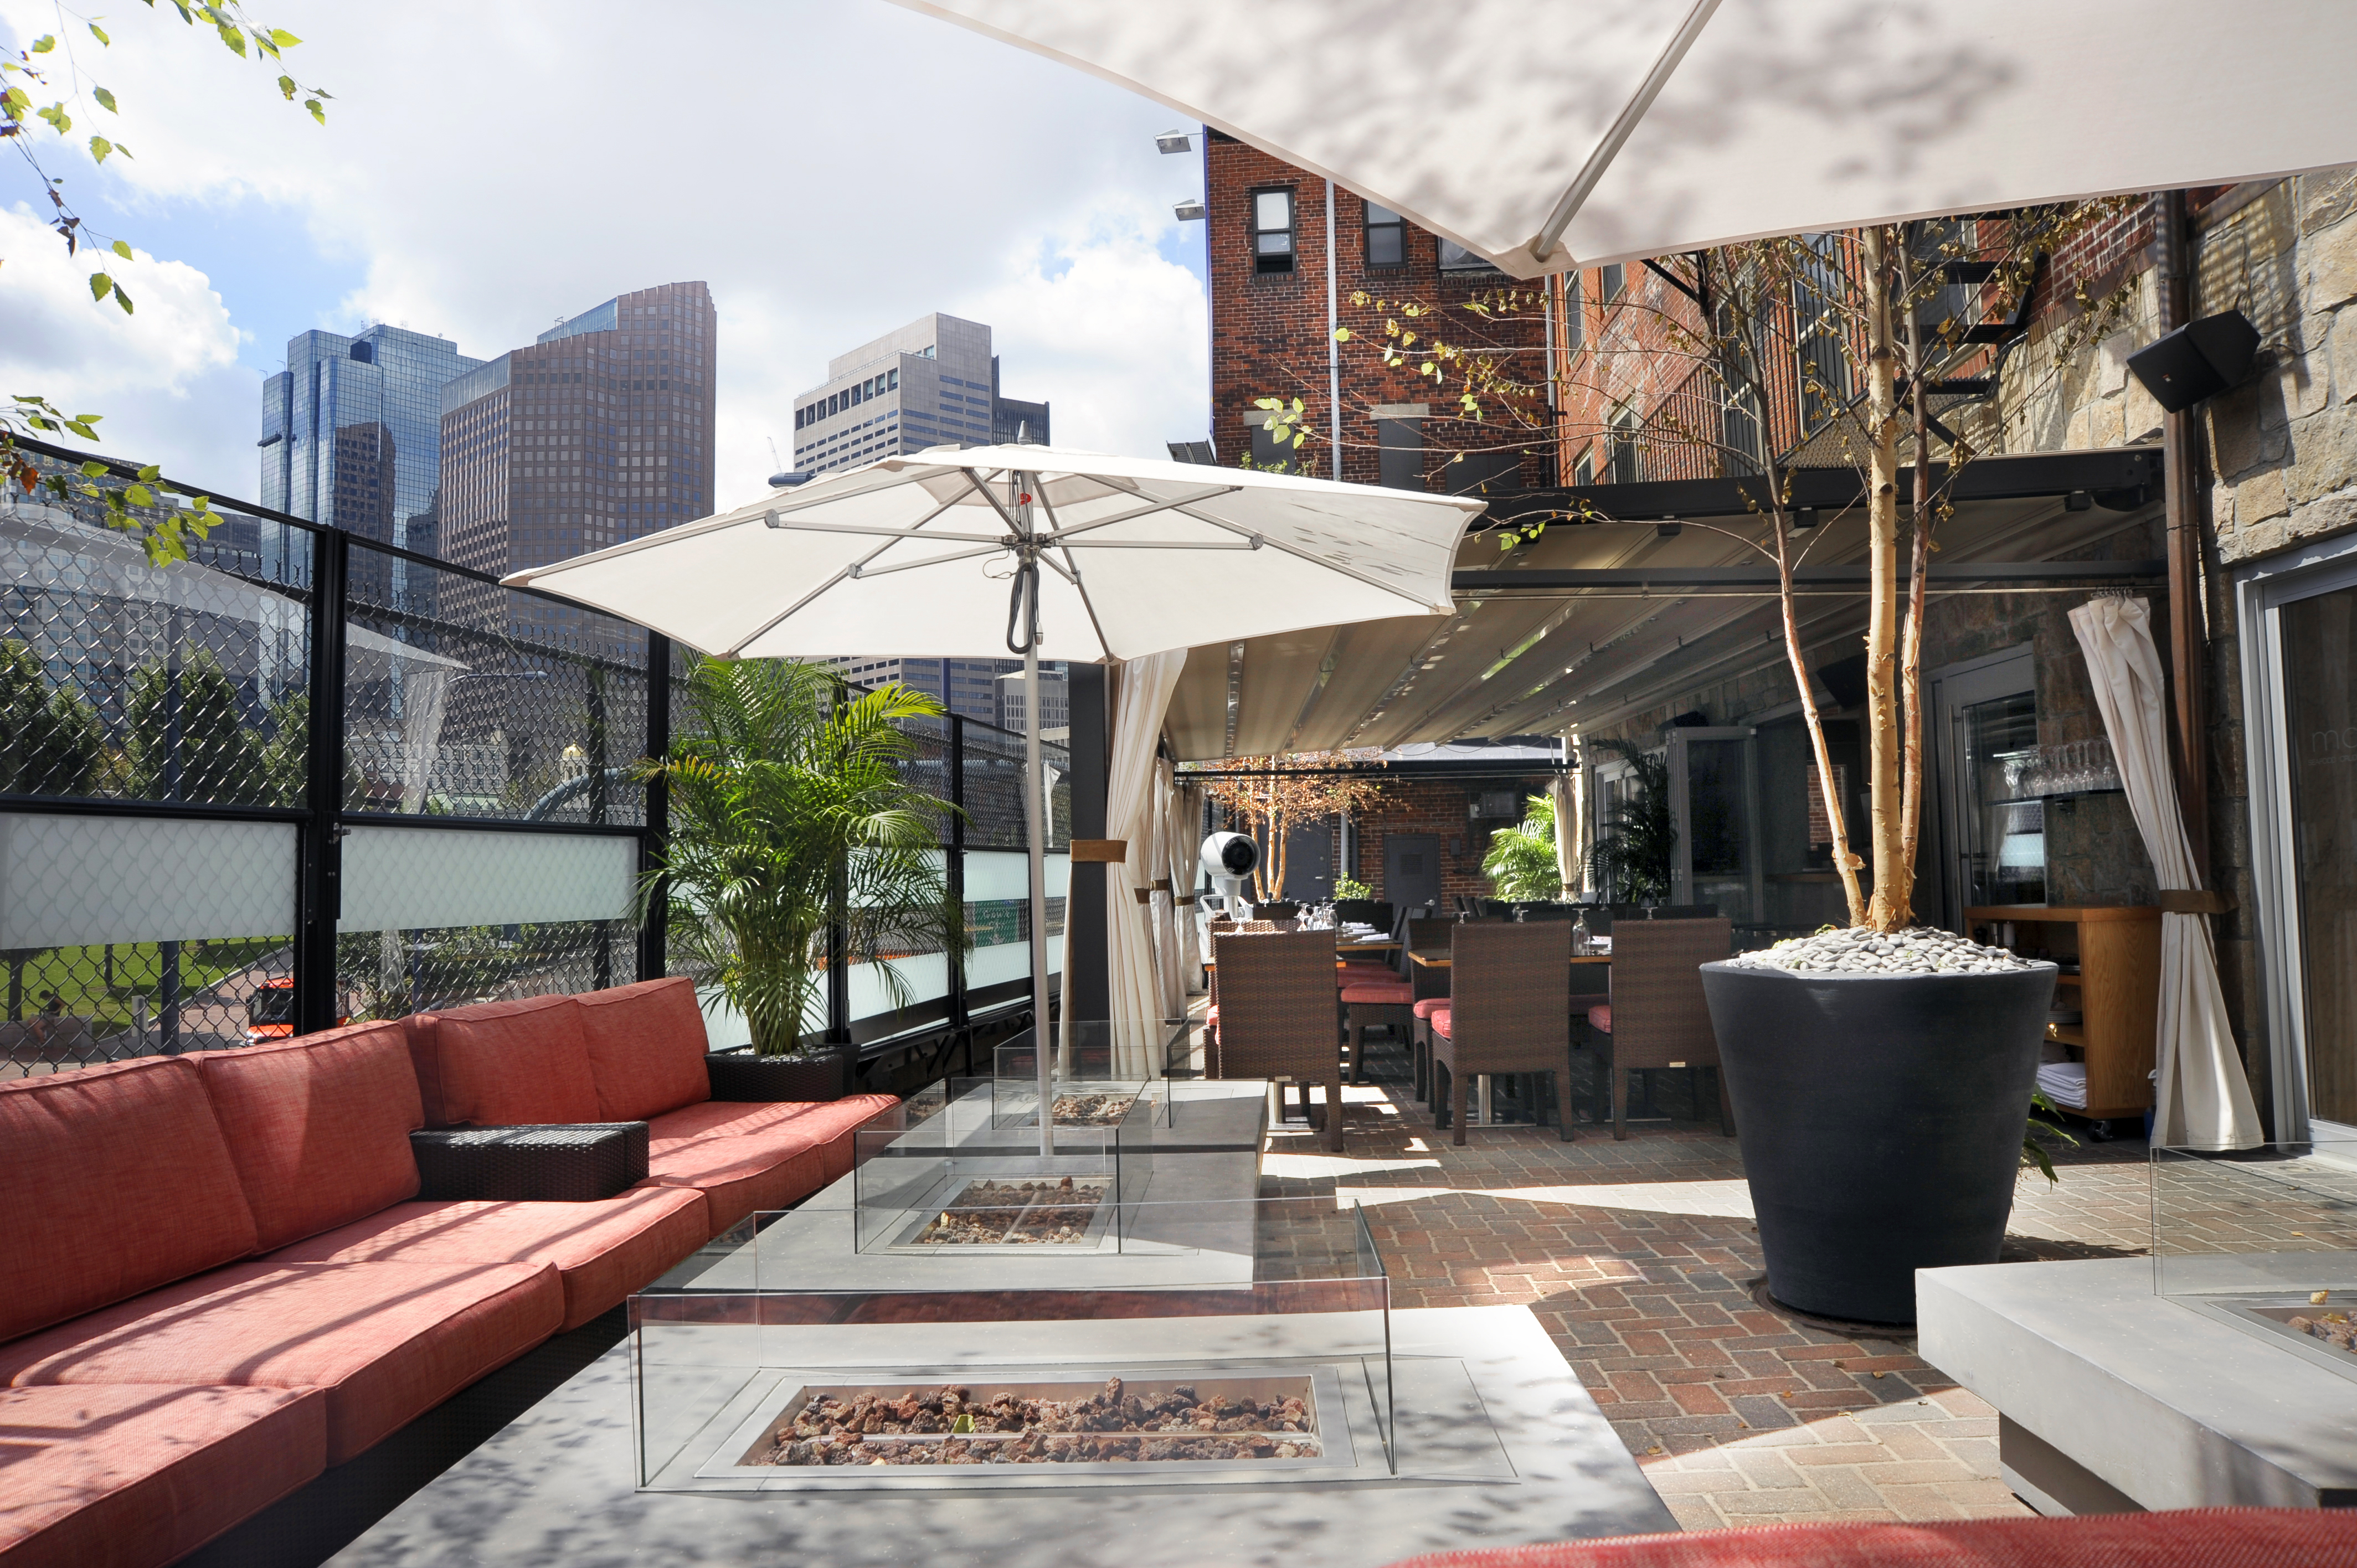 A restaurant's outdoor patio with fire pits, white umbrellas, and lounge seating with red cushions